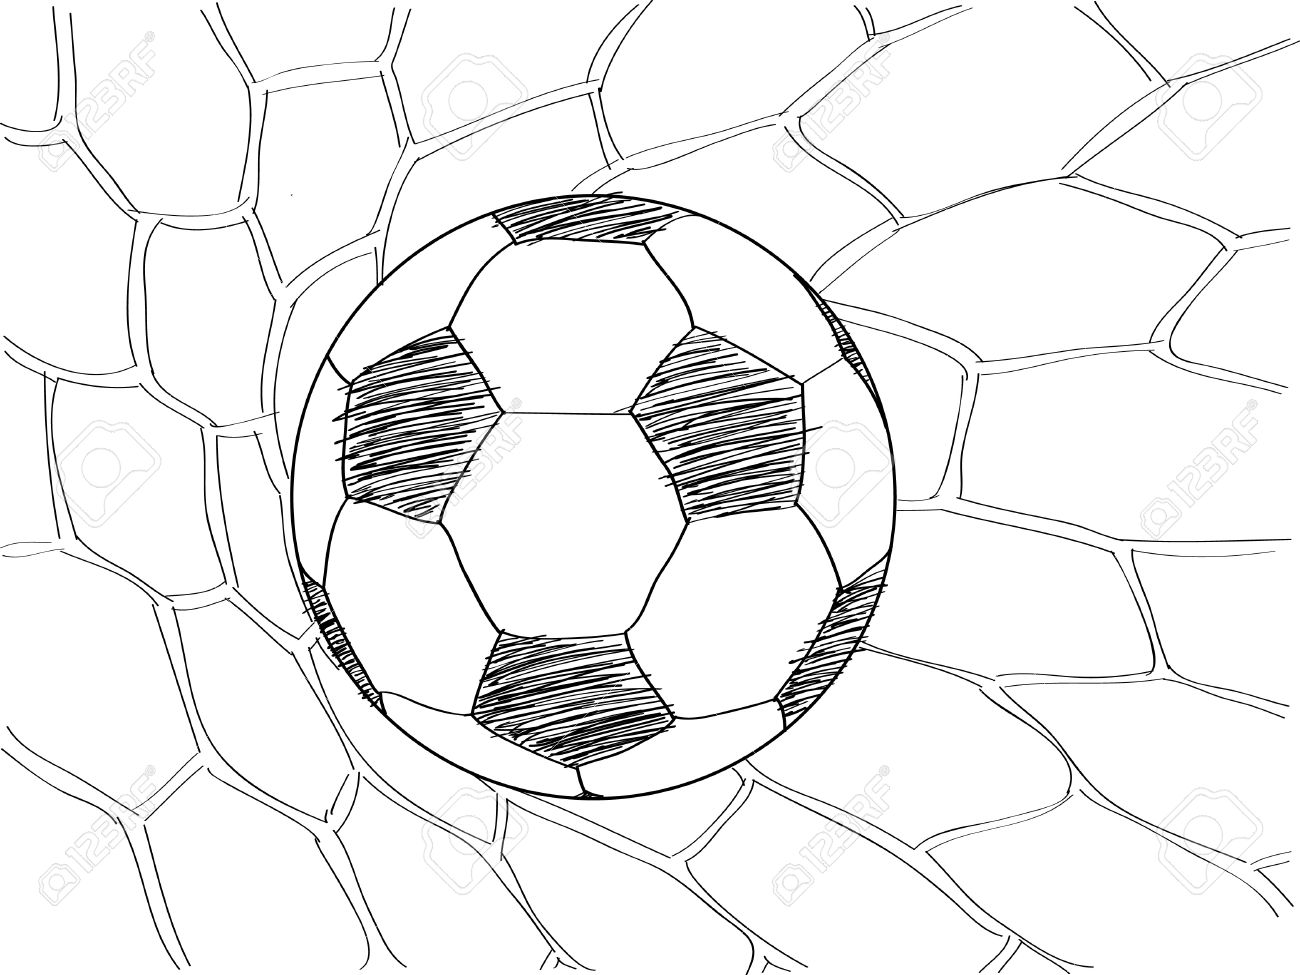 1300x975 Soccer Football In Goal Net Sketched Up Royalty Free Cliparts